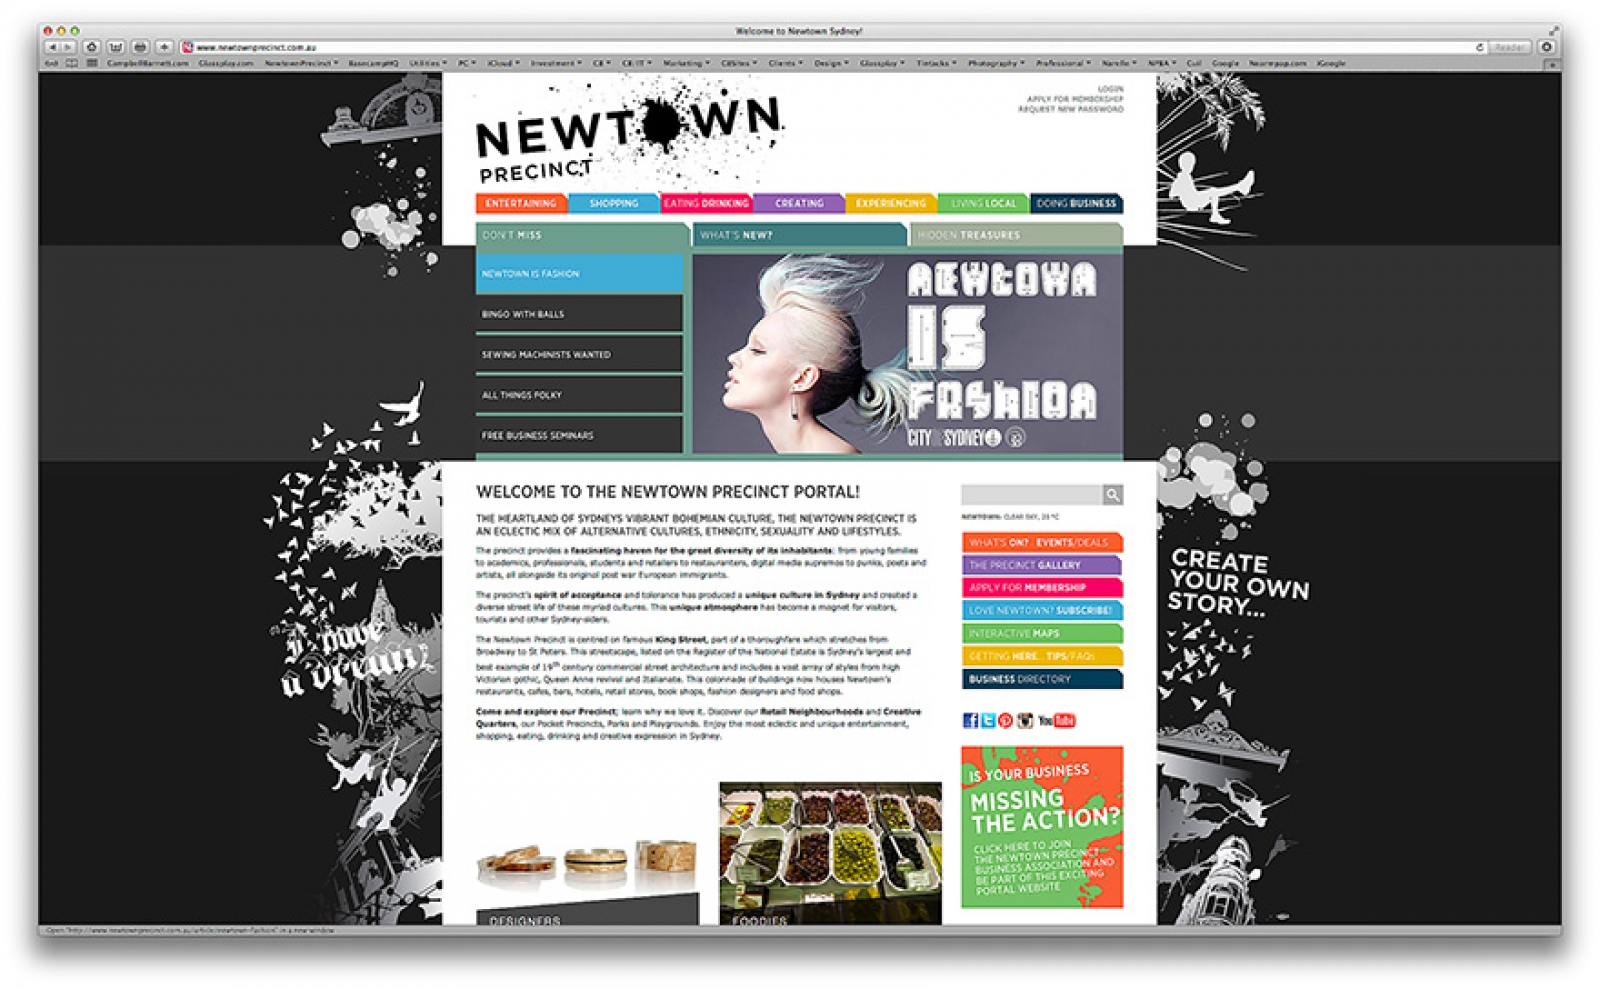 Newtown Precinct Web Portal